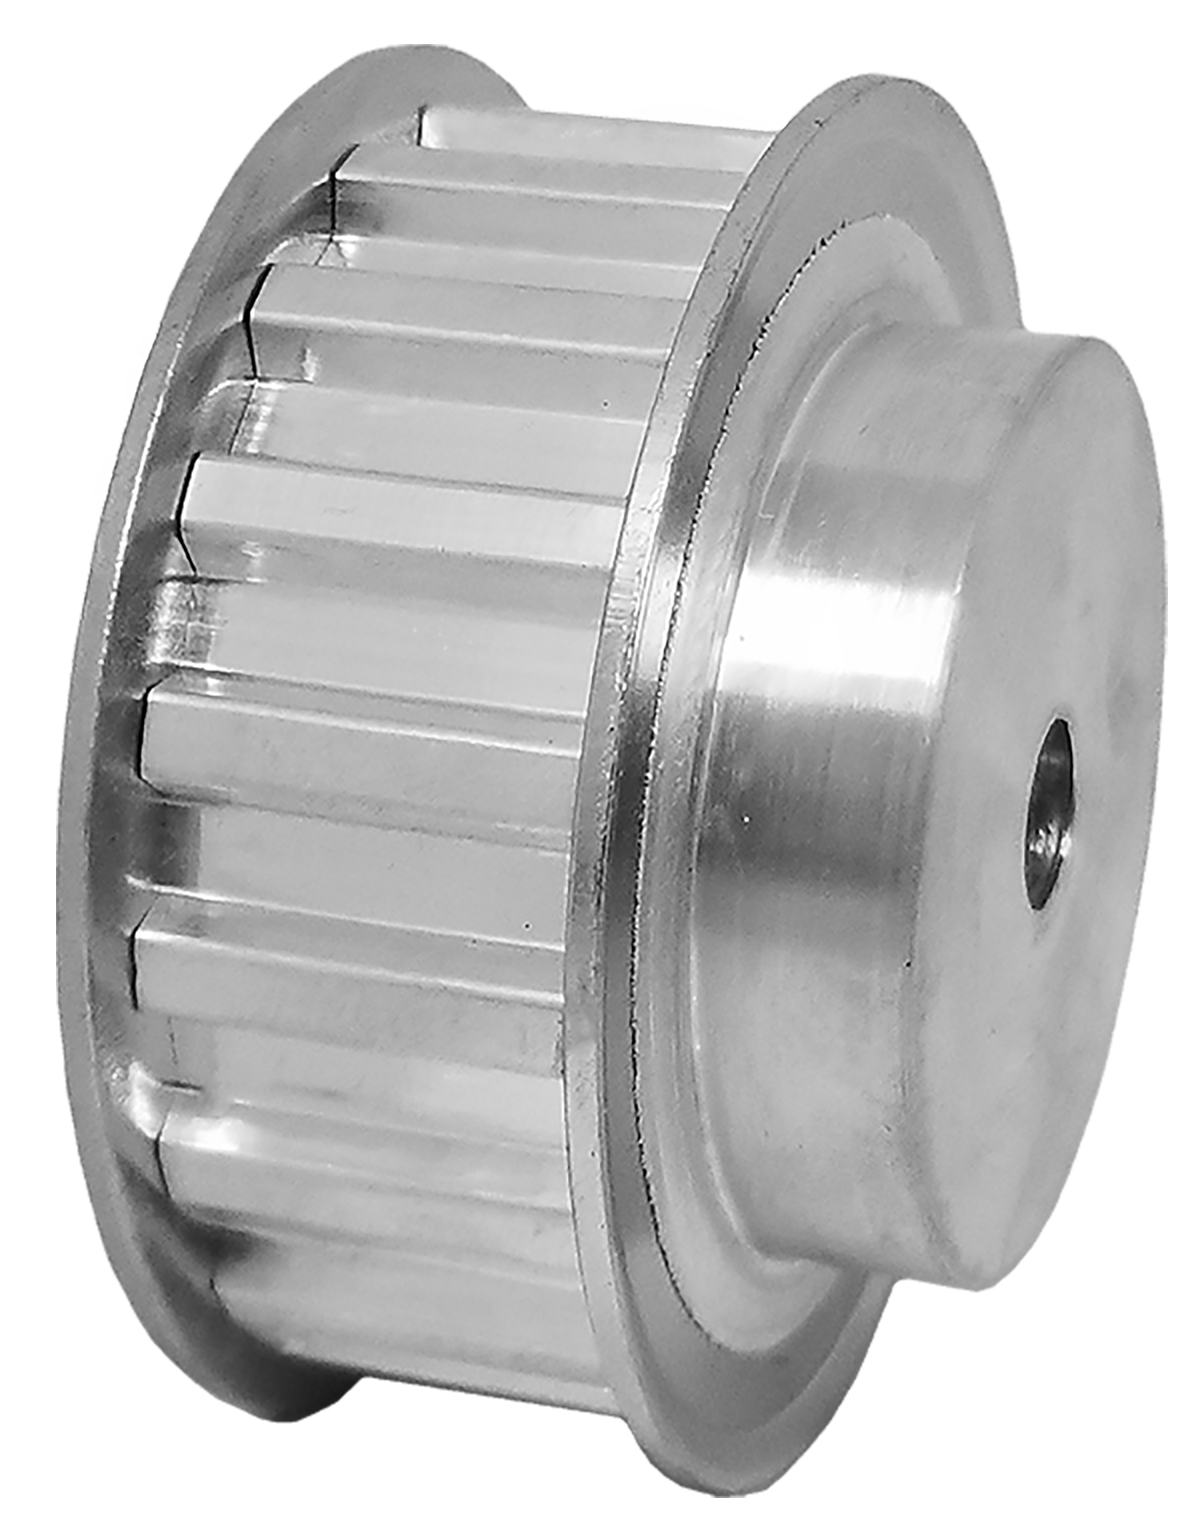 31T10/18-2 - Aluminum Metric Pulleys